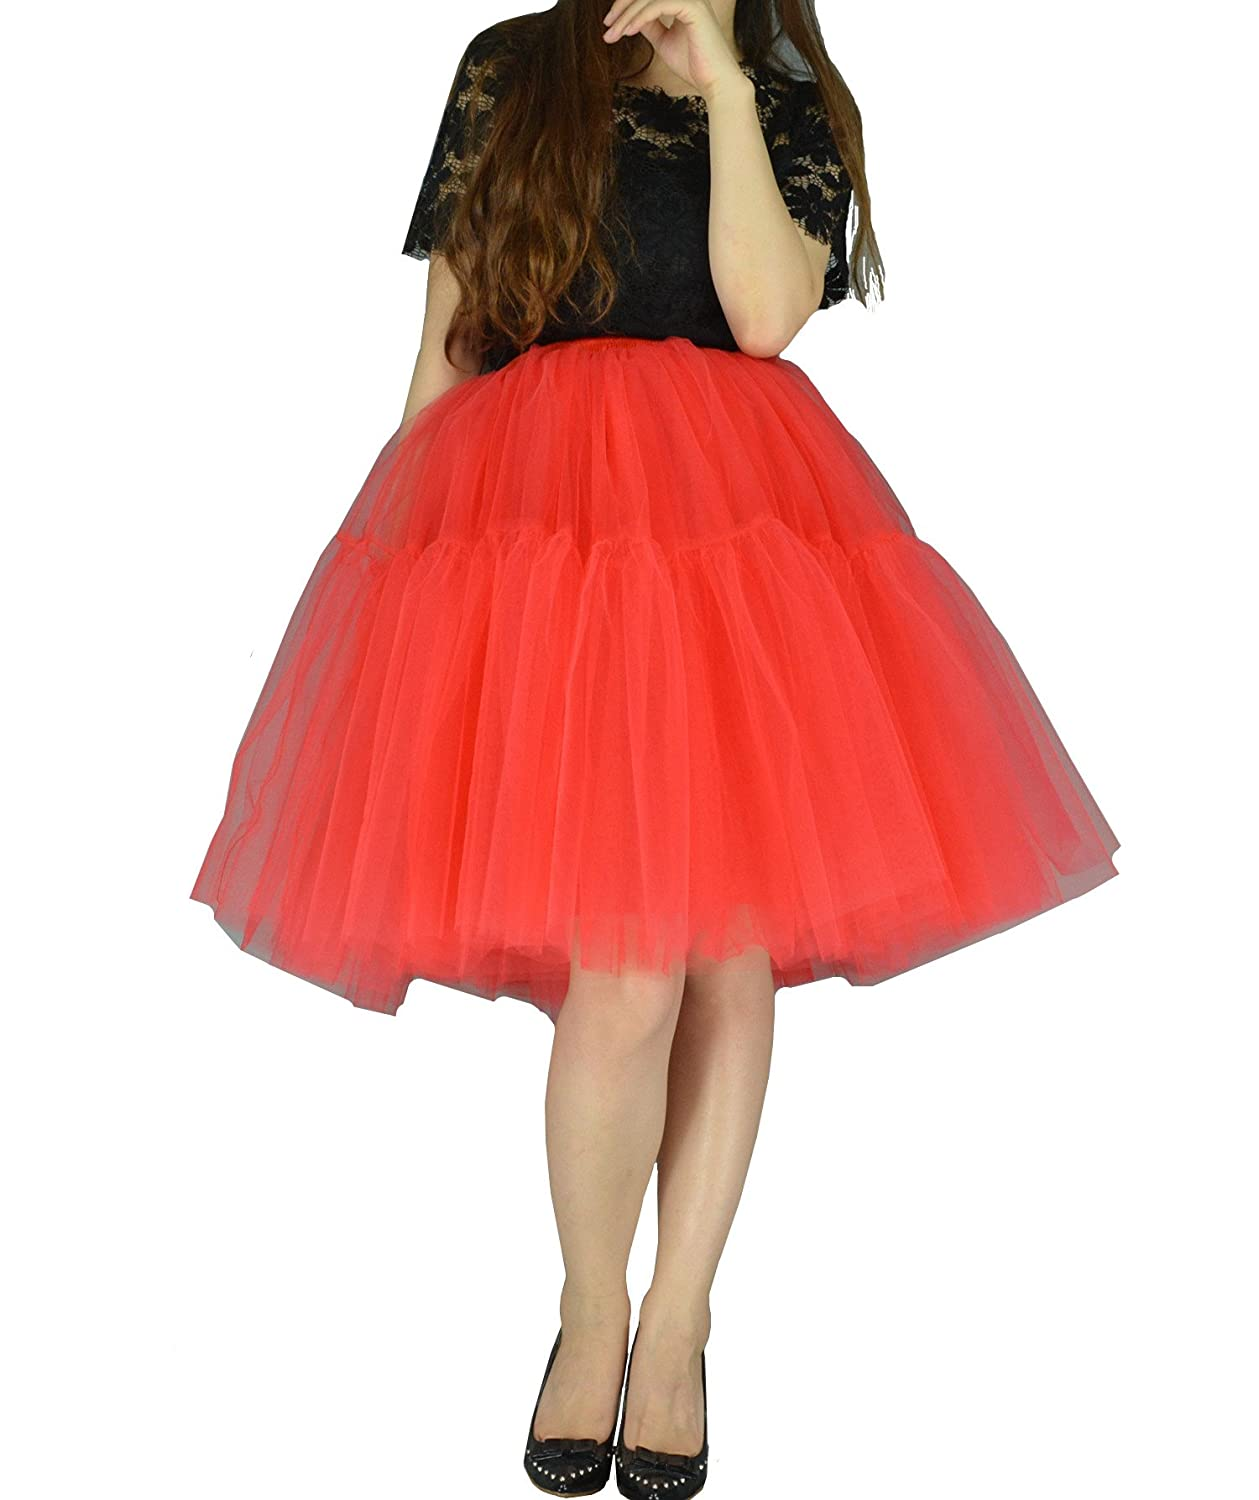 YSJERA Women's 6 Layered Adult Tutu Tututs Tulle Midi A Line Petticoat Prom Party Skirt